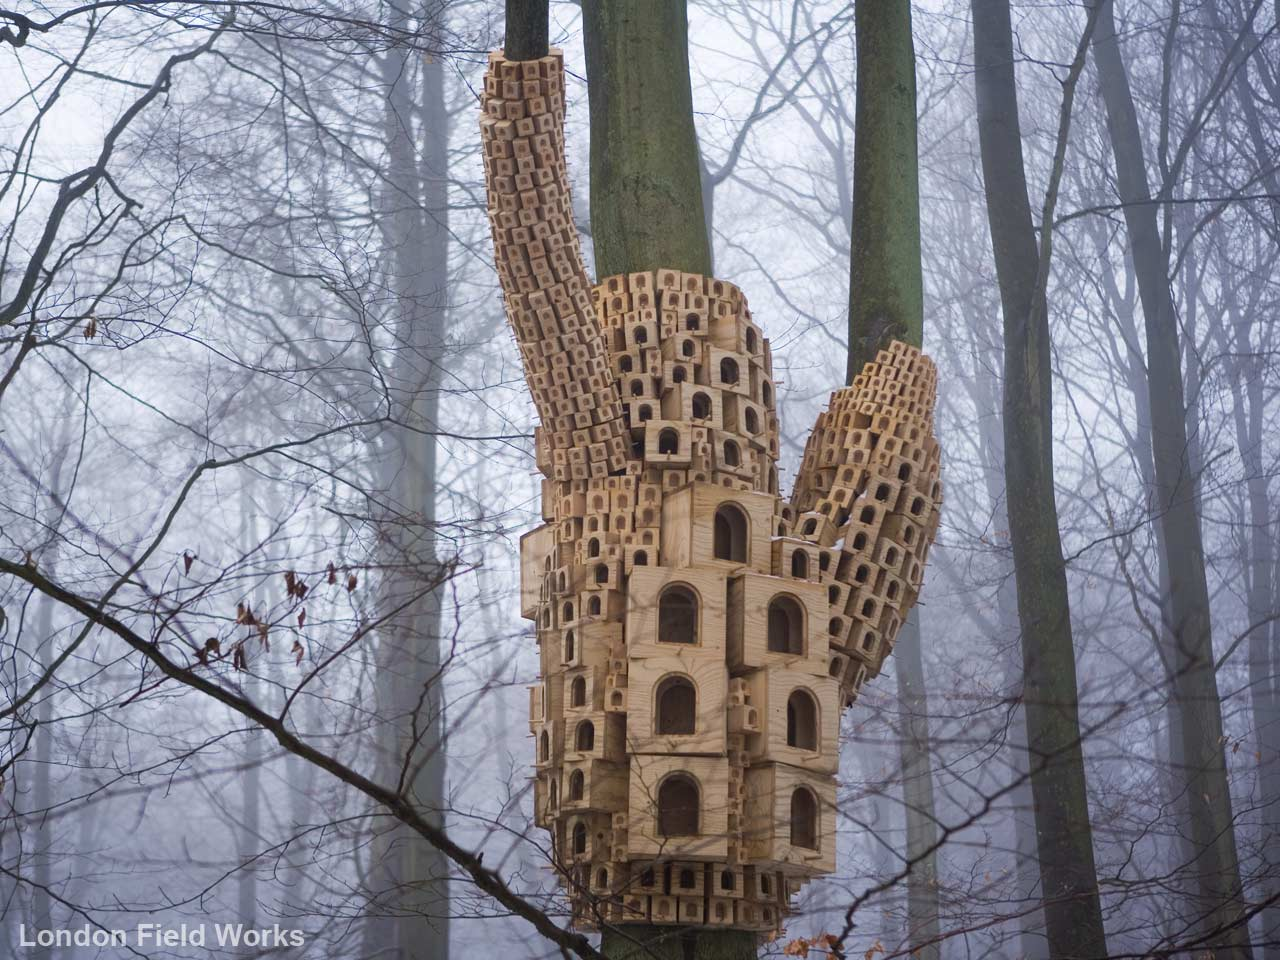 London Fieldworks birdhouse